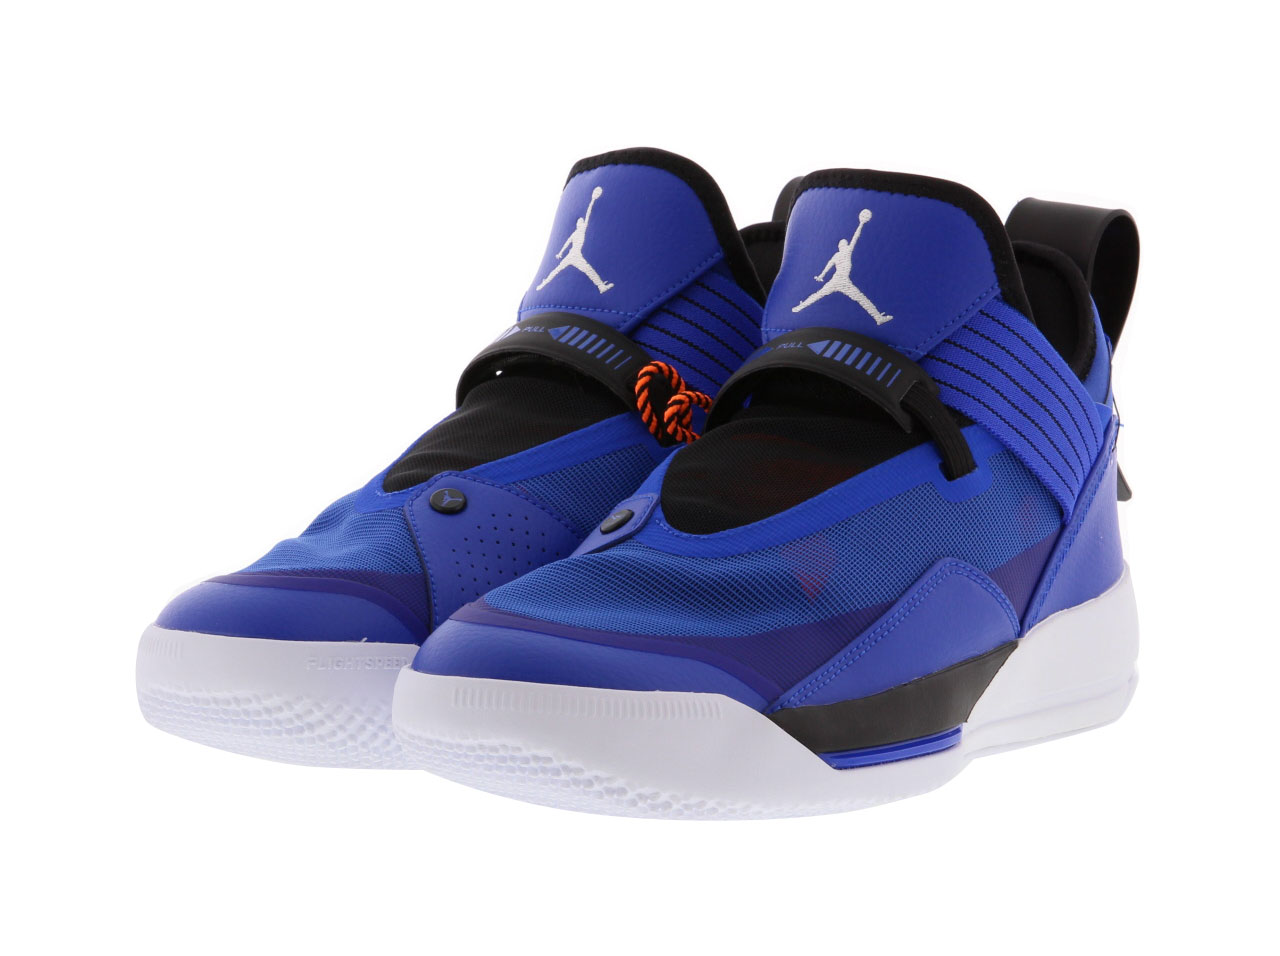 【SALE】AIR JORDAN XXXIII SE PF - HYPER ROYAL/WHITE/BLACK